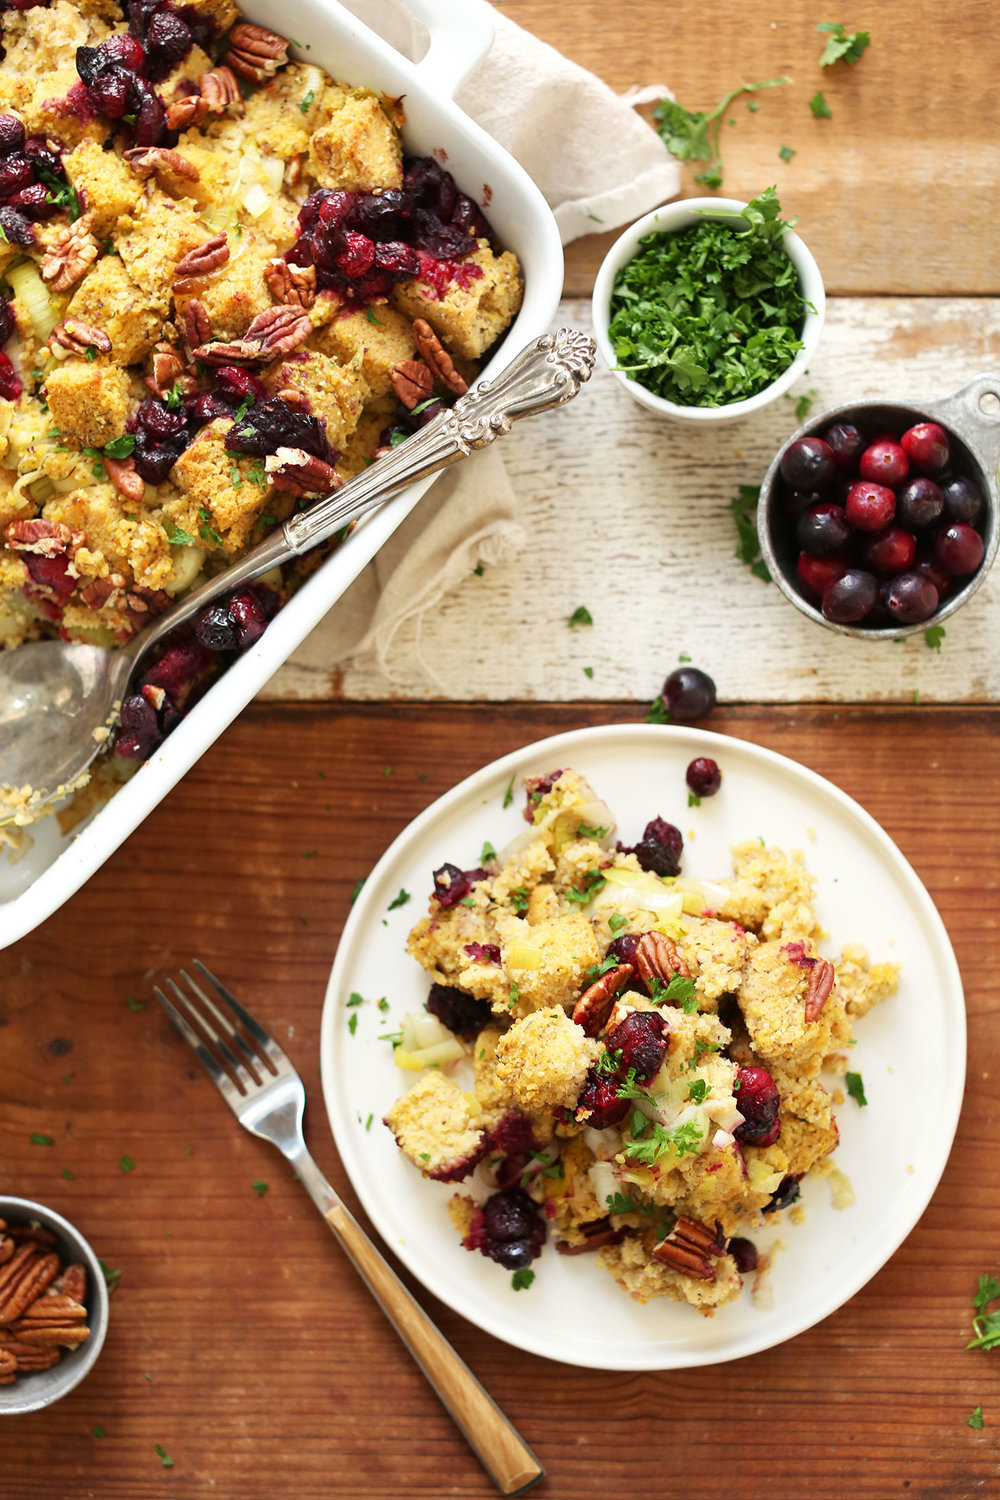 INCREDIBLE-Vegan-Gluten-Free-CORNBREAD-STUFFING-10-ingredients-tender-flavorful-savory-vegan-glutenfree-stuffing-cornbread-recipe-easy.jpg